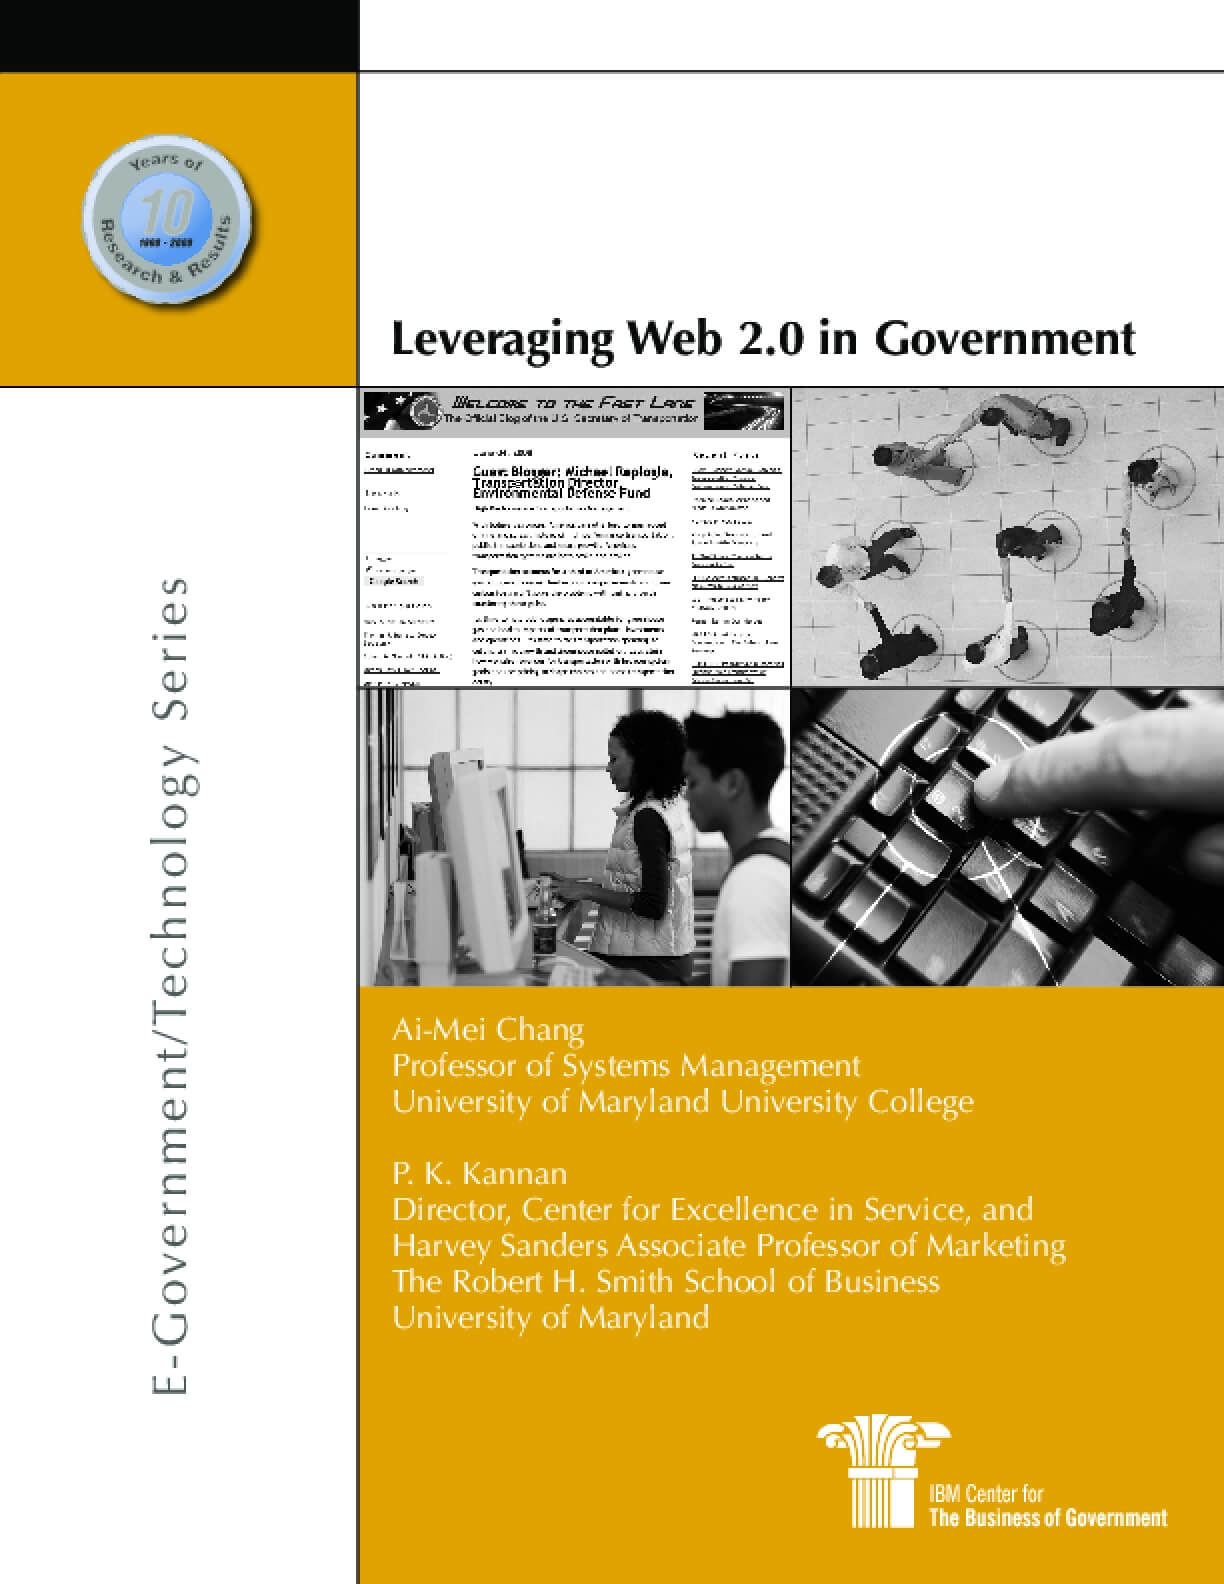 Leveraging Web 2.0 in Government